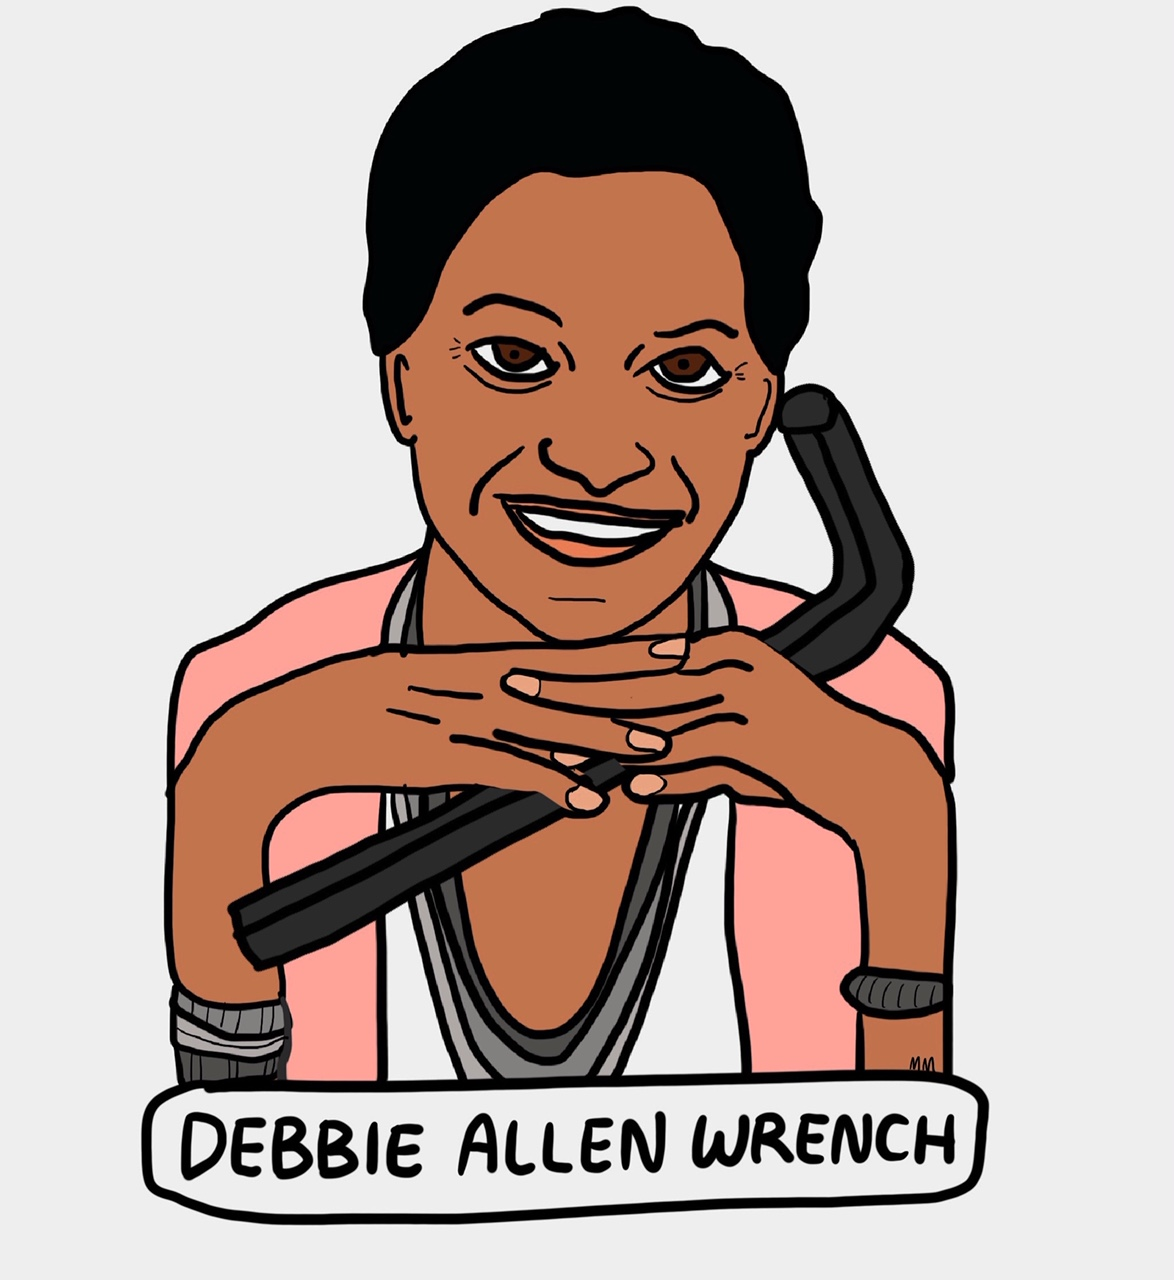 Debbie Allen Wrench